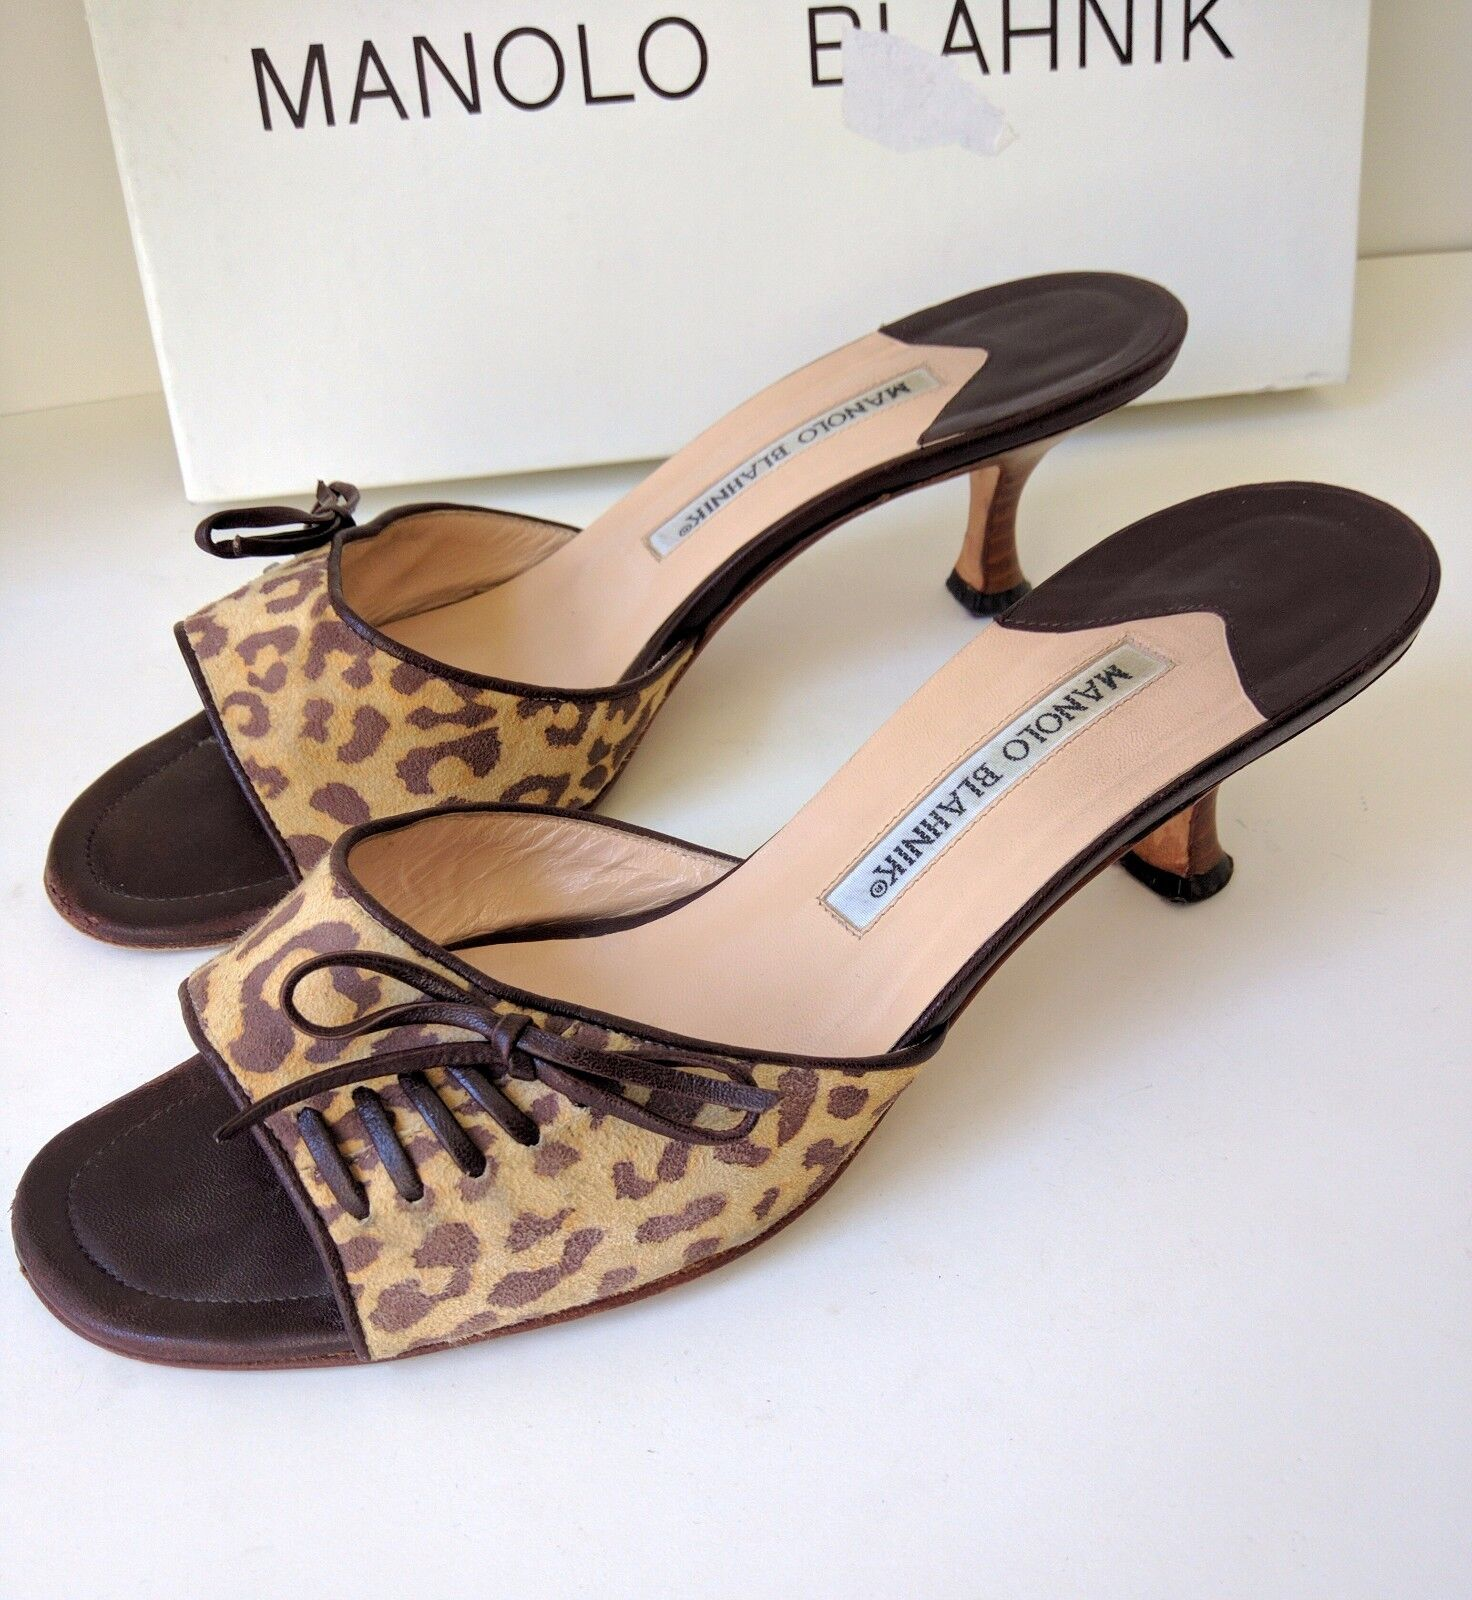 MANOLO BLAHNIK  Brown ANIMAL PRINT  SLIDE SANDALS ON THE HILLl Sz 38.5